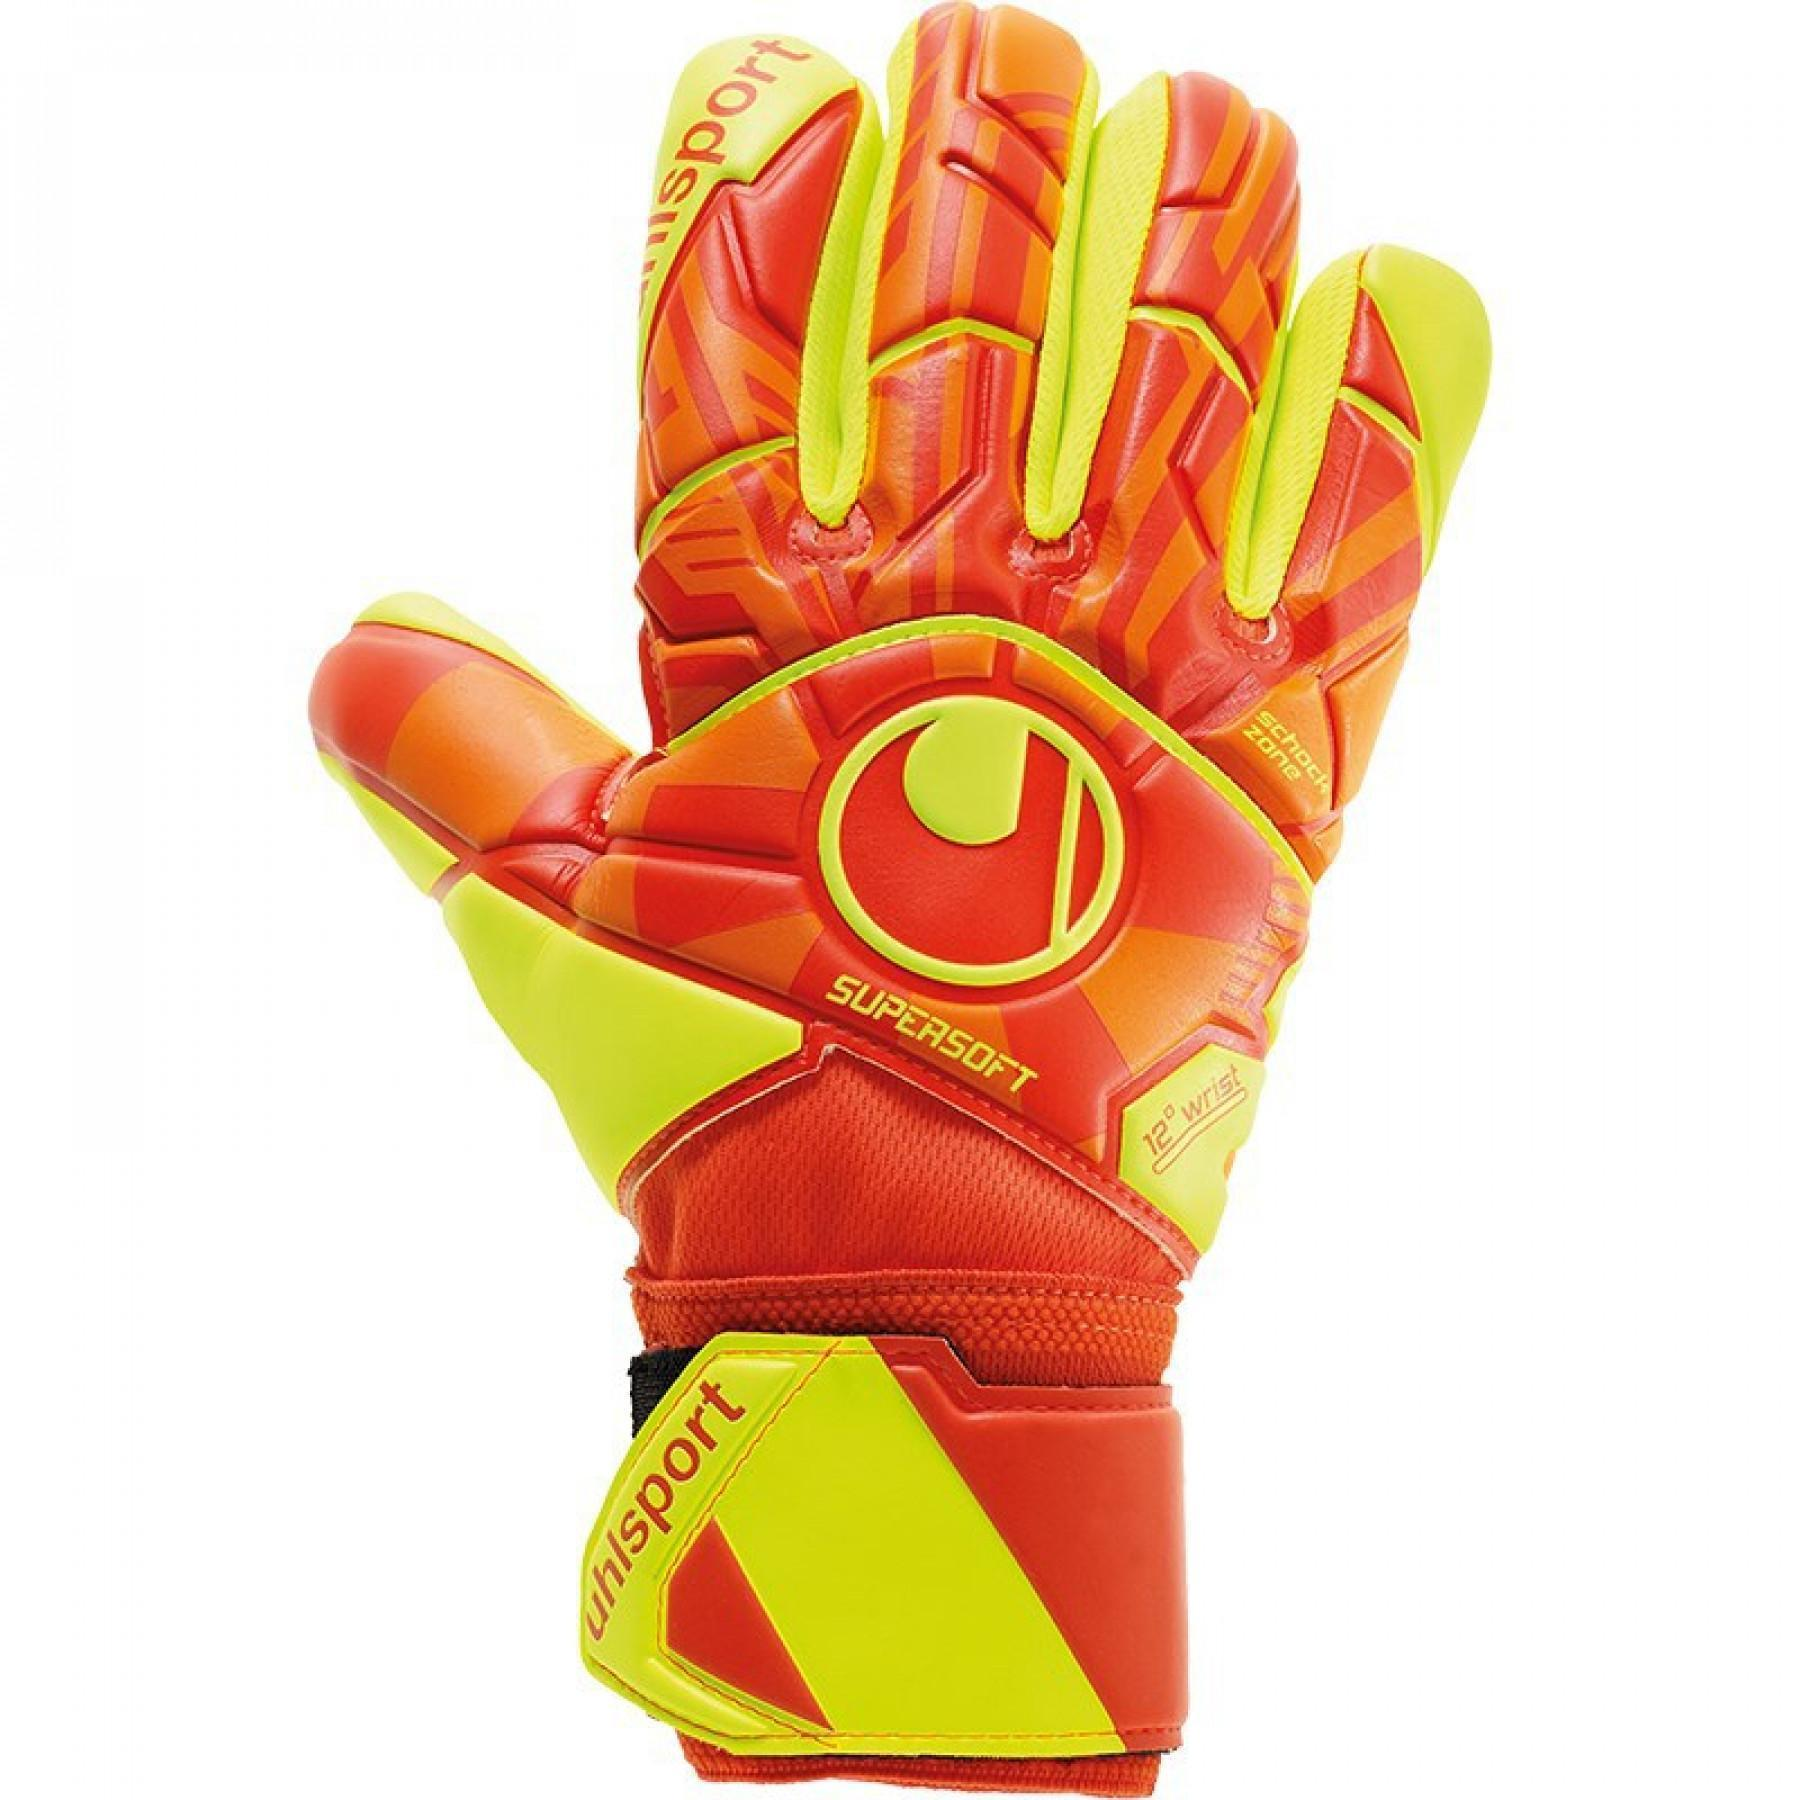 Goalkeeper gloves Uhlsport Dynamic Impulse Supersoft Hn